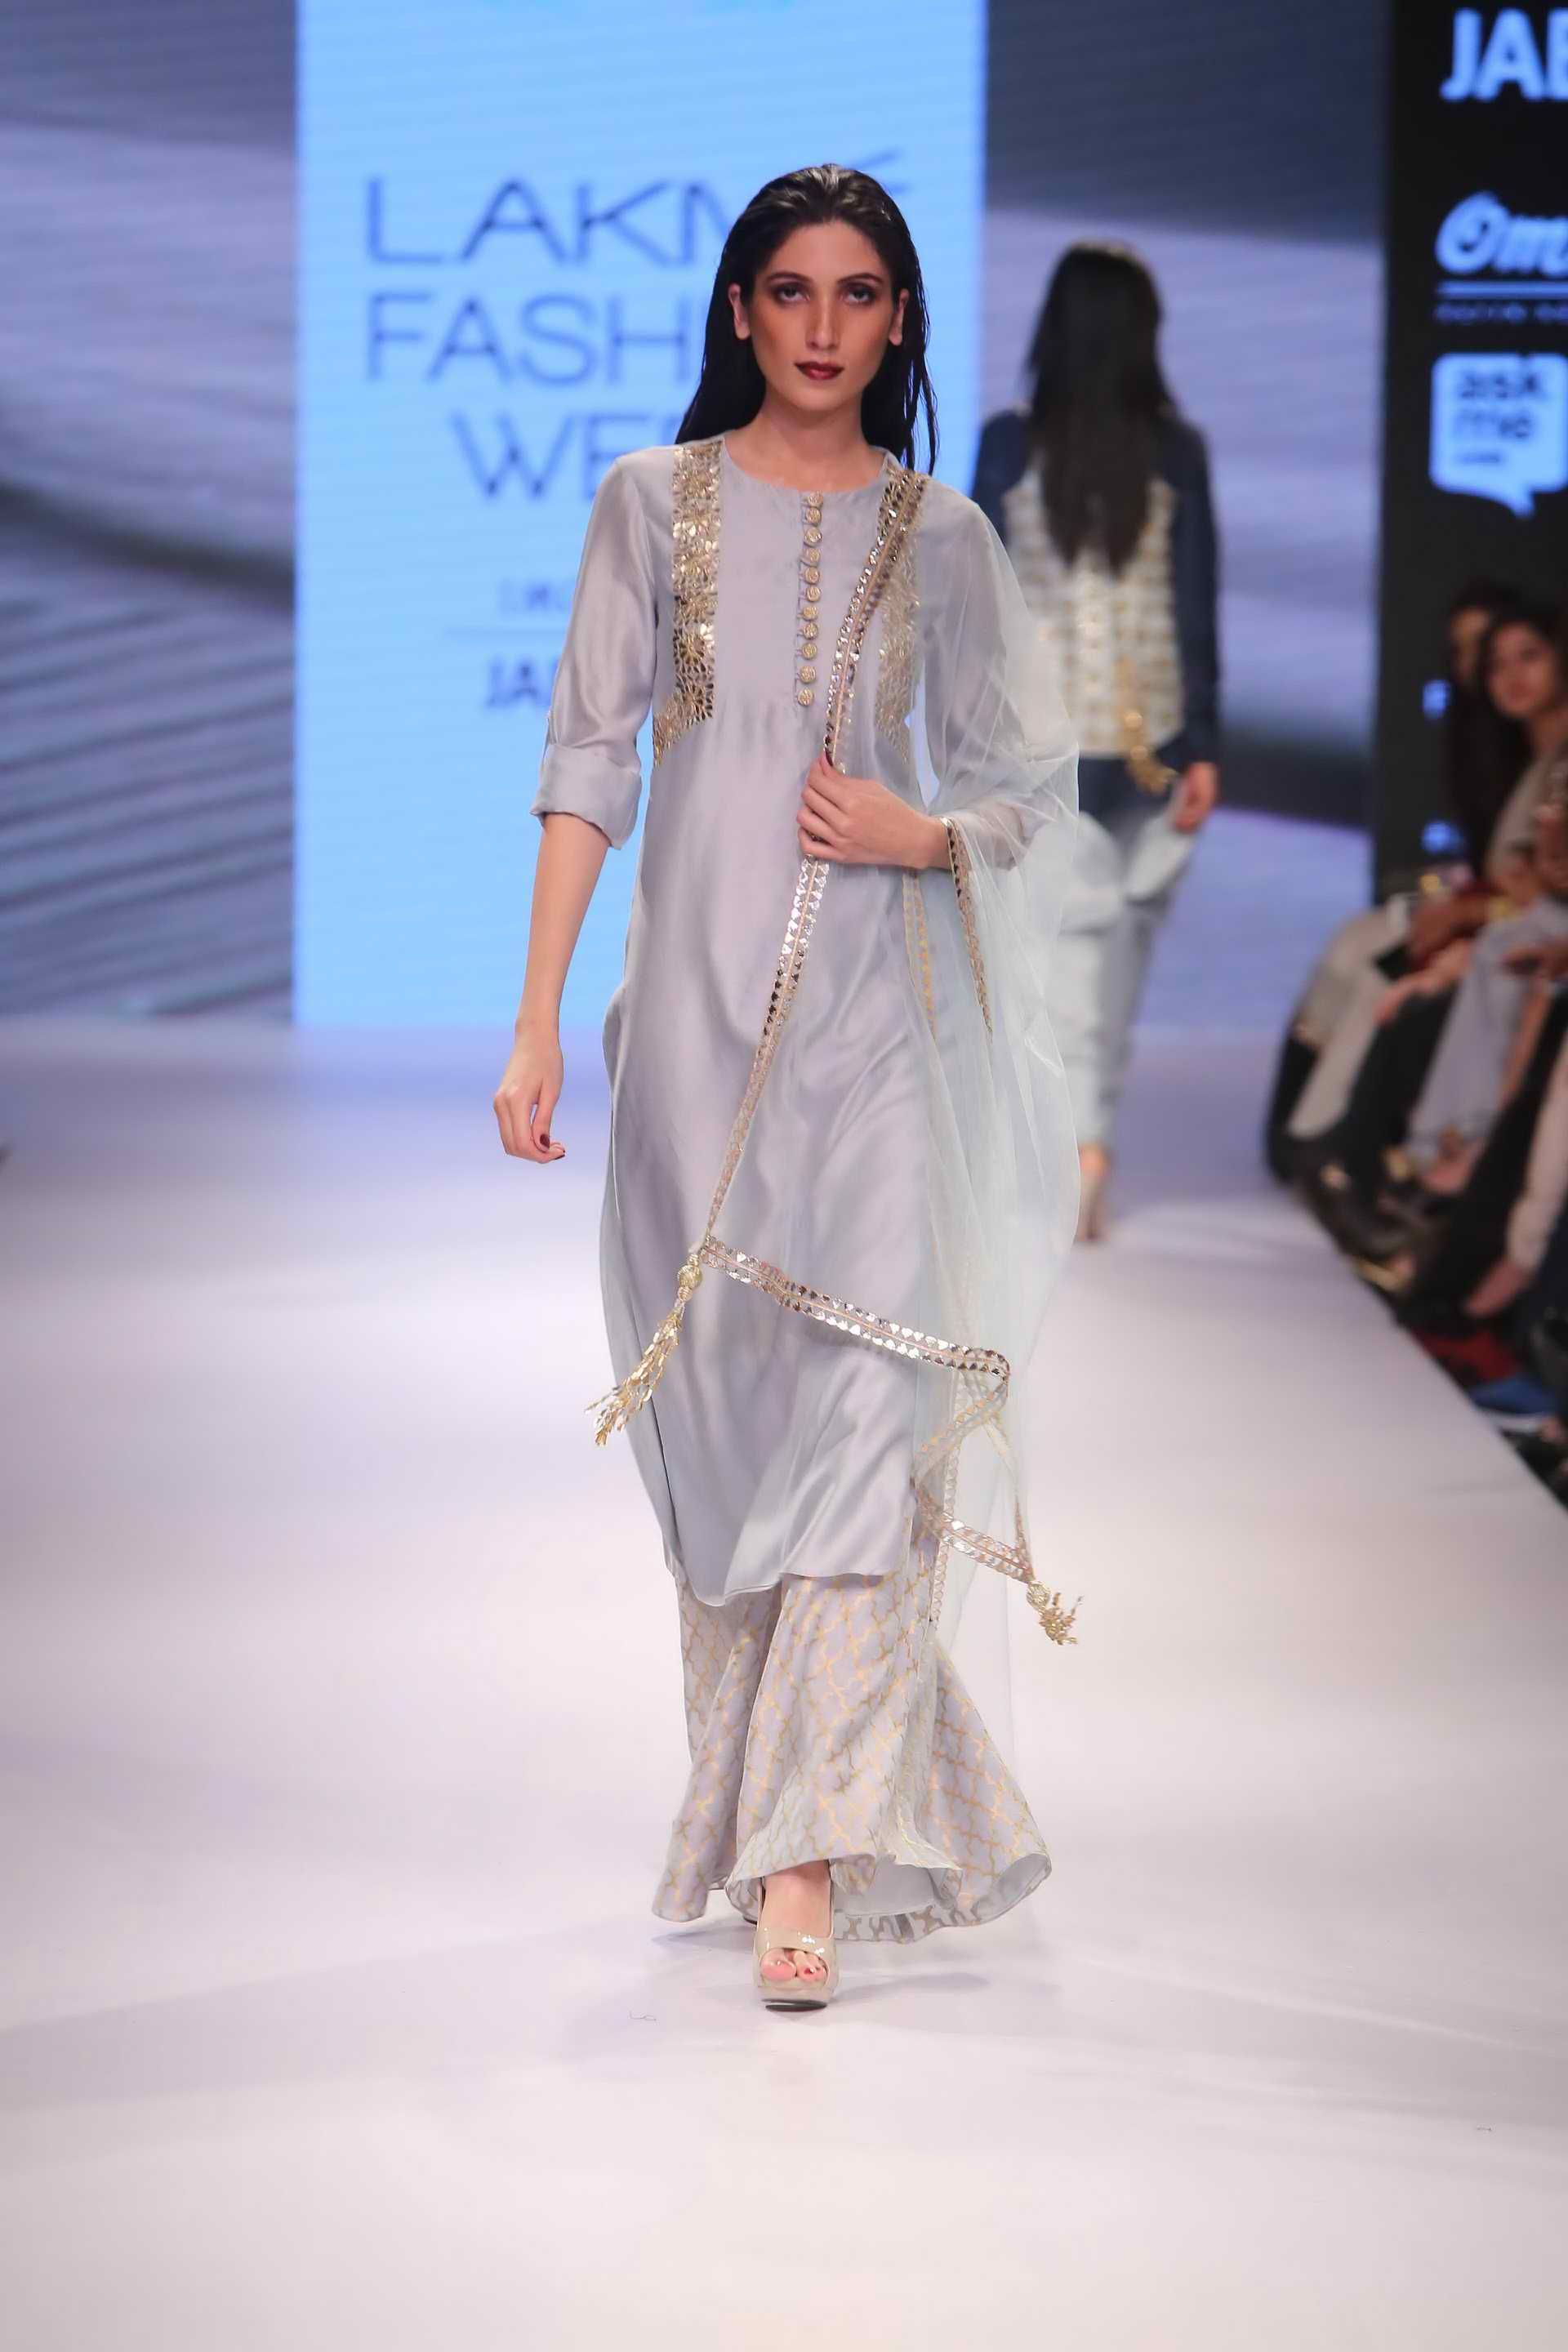 Lakme Fashion Week Payal Singhal 2015 The Is Beautiful Up Close With Images Indian Outfits Indian Attire Lakme Fashion Week